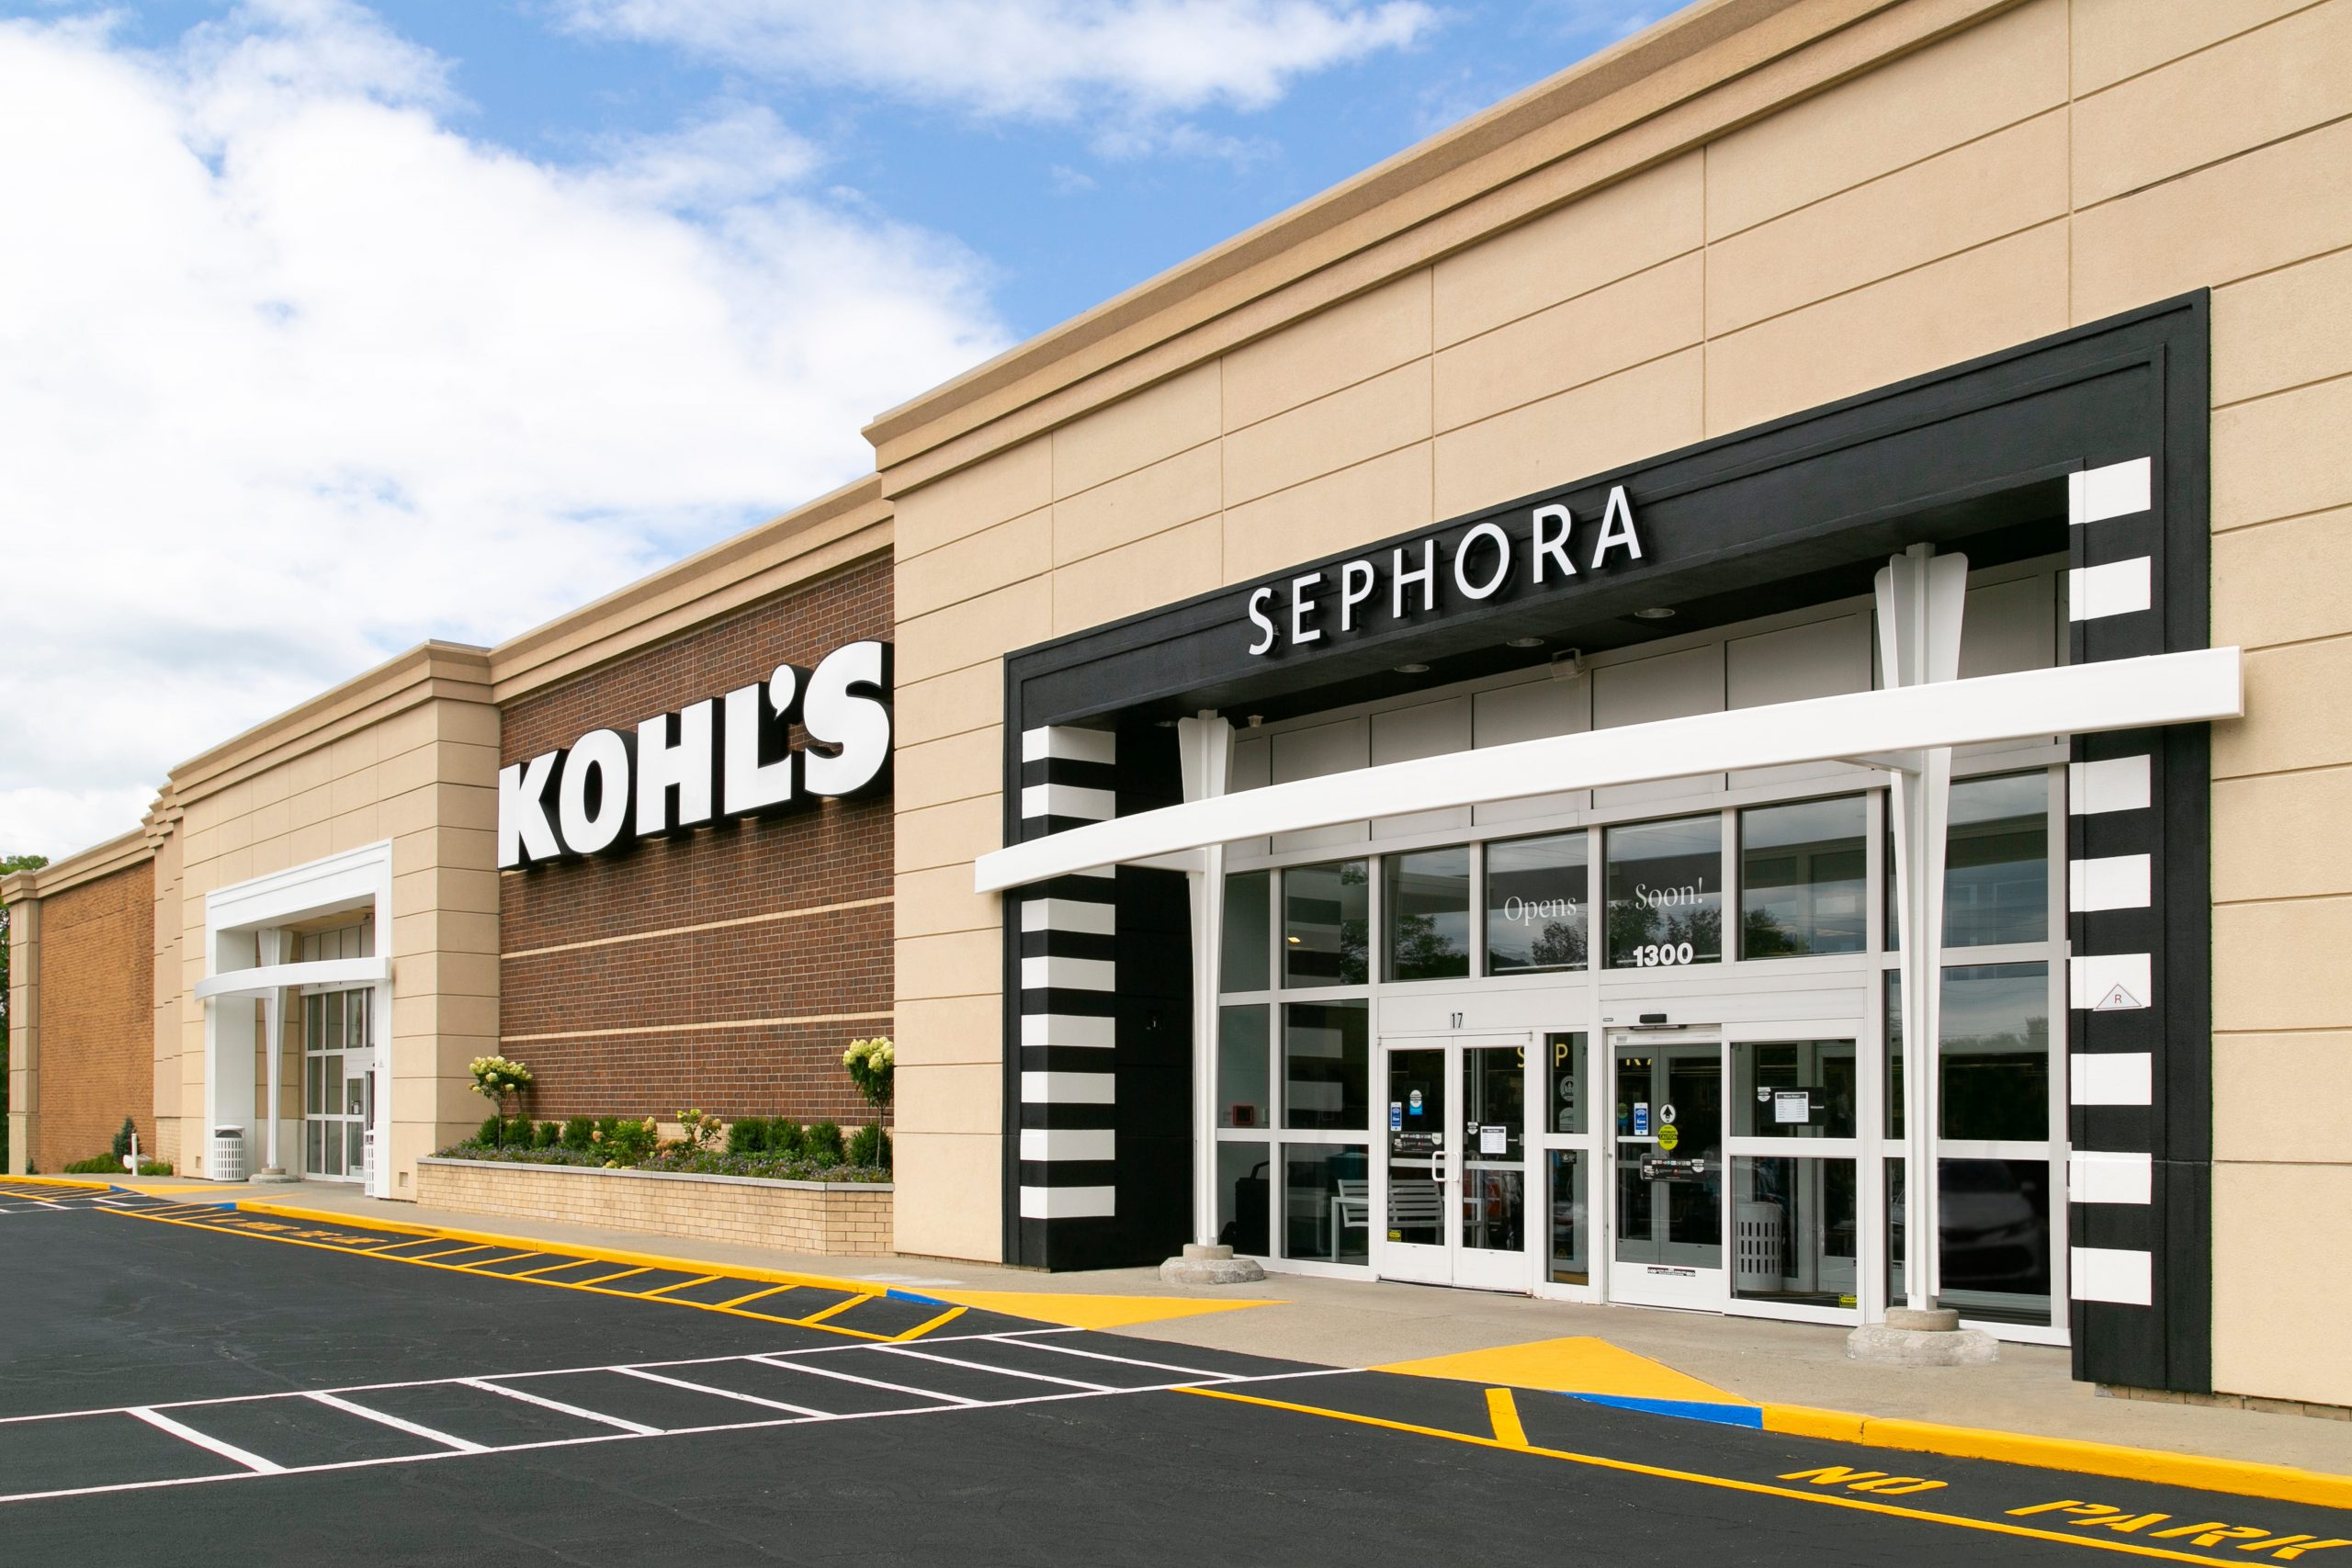 Sephora at Kohl's locations are opening. See which stores are getting a makeover and when.